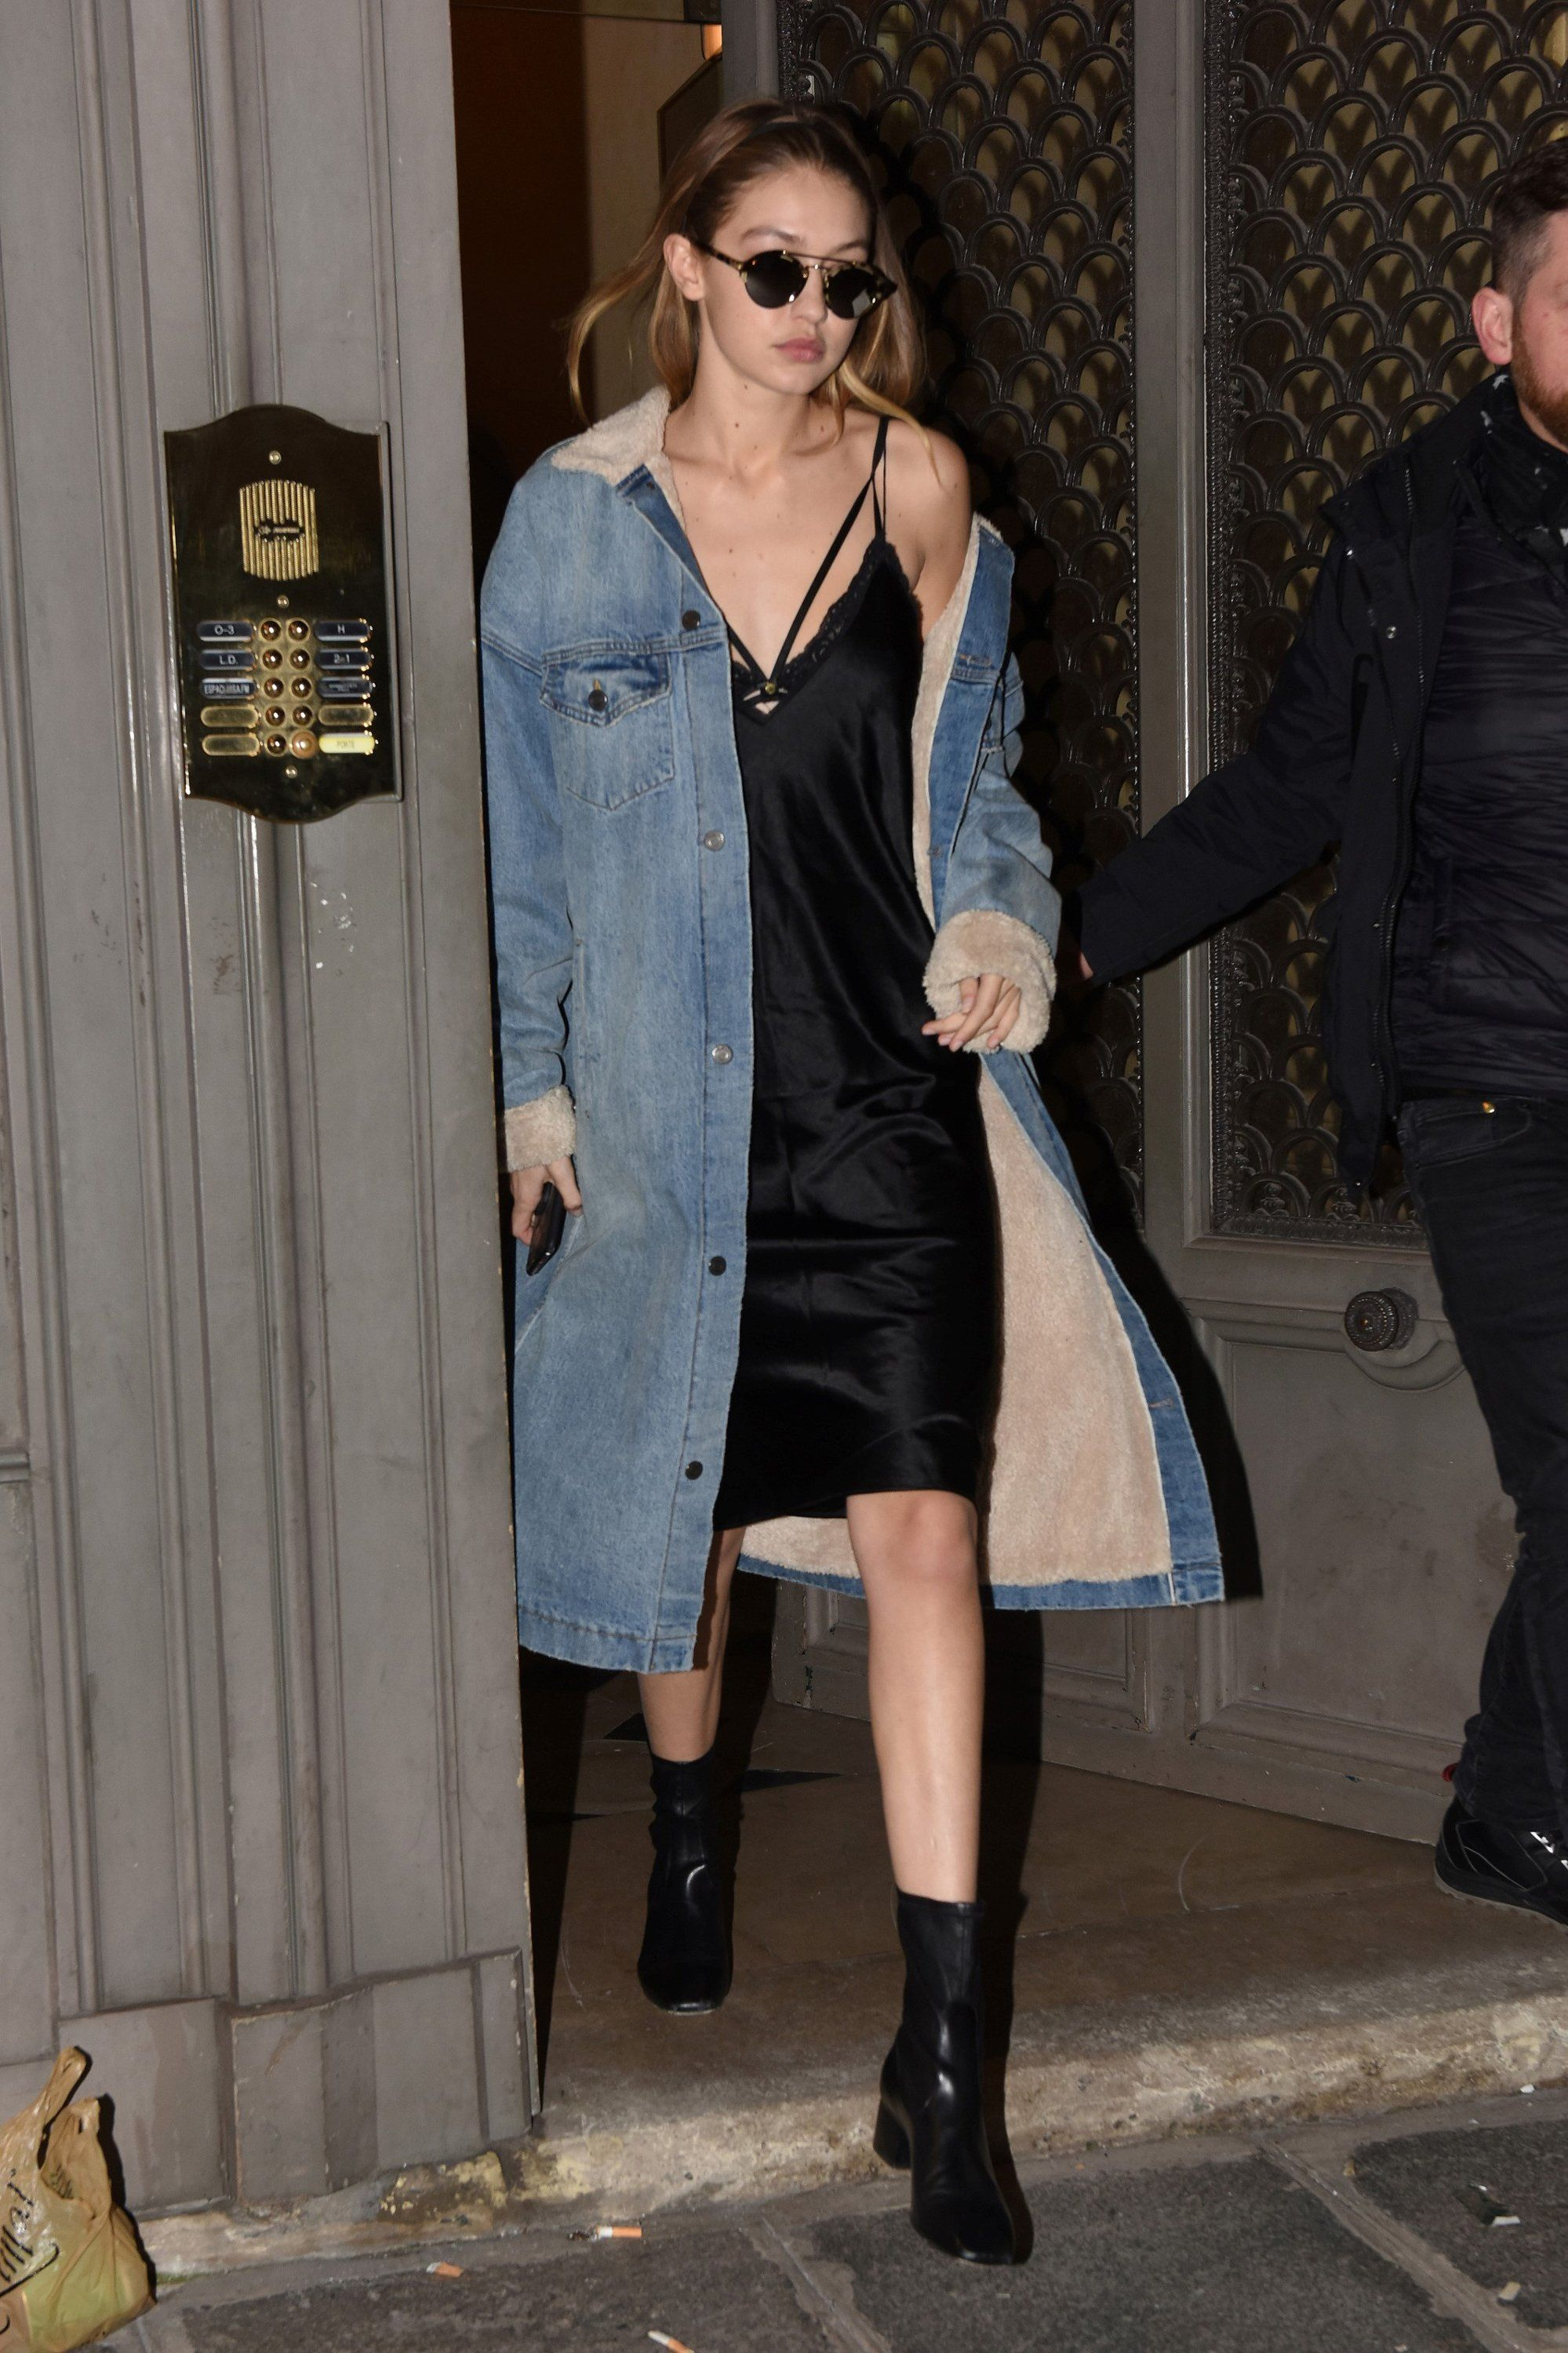 Gigi Hadid Gives The Slip Dress A Grunge Makeover In Paris Denim Jacket With Dress Fashion Street Style [ 3000 x 1999 Pixel ]